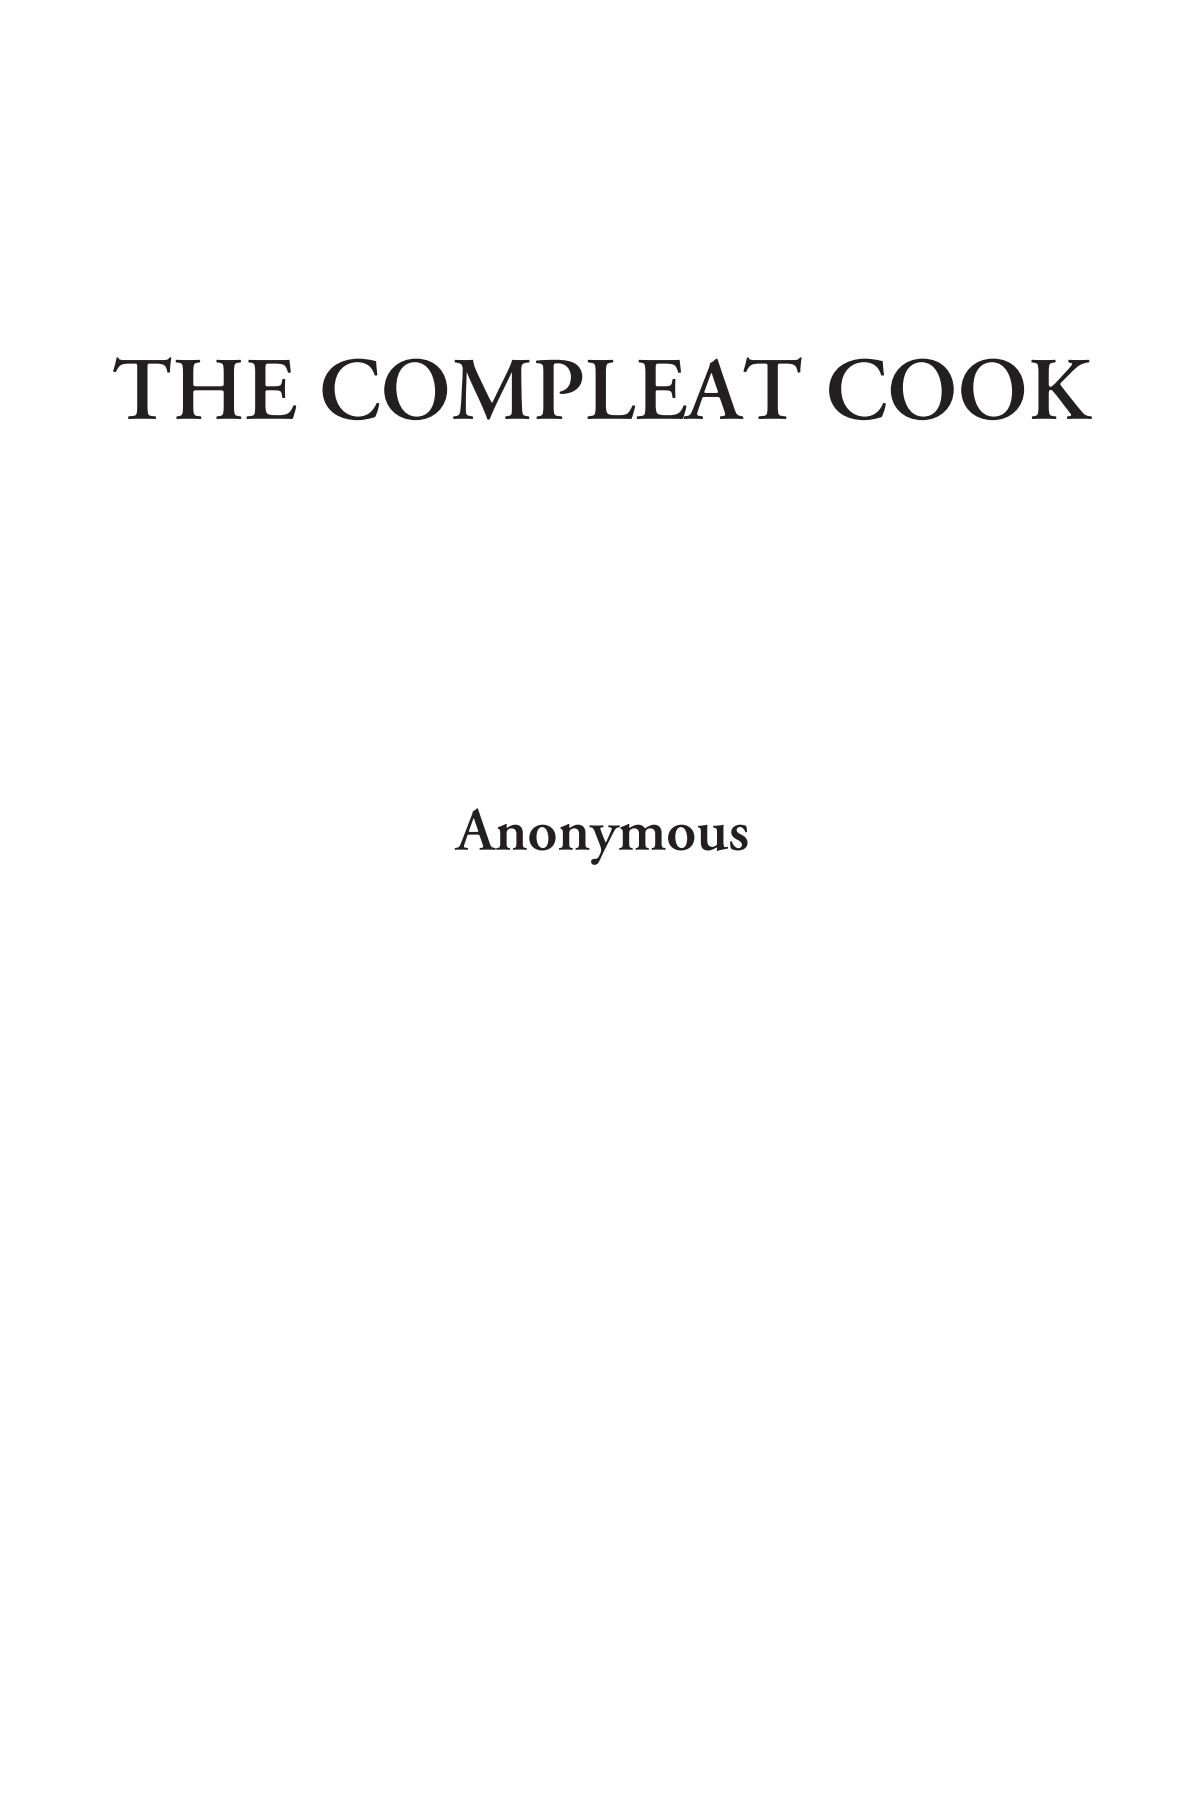 Download The Compleat Cook PDF